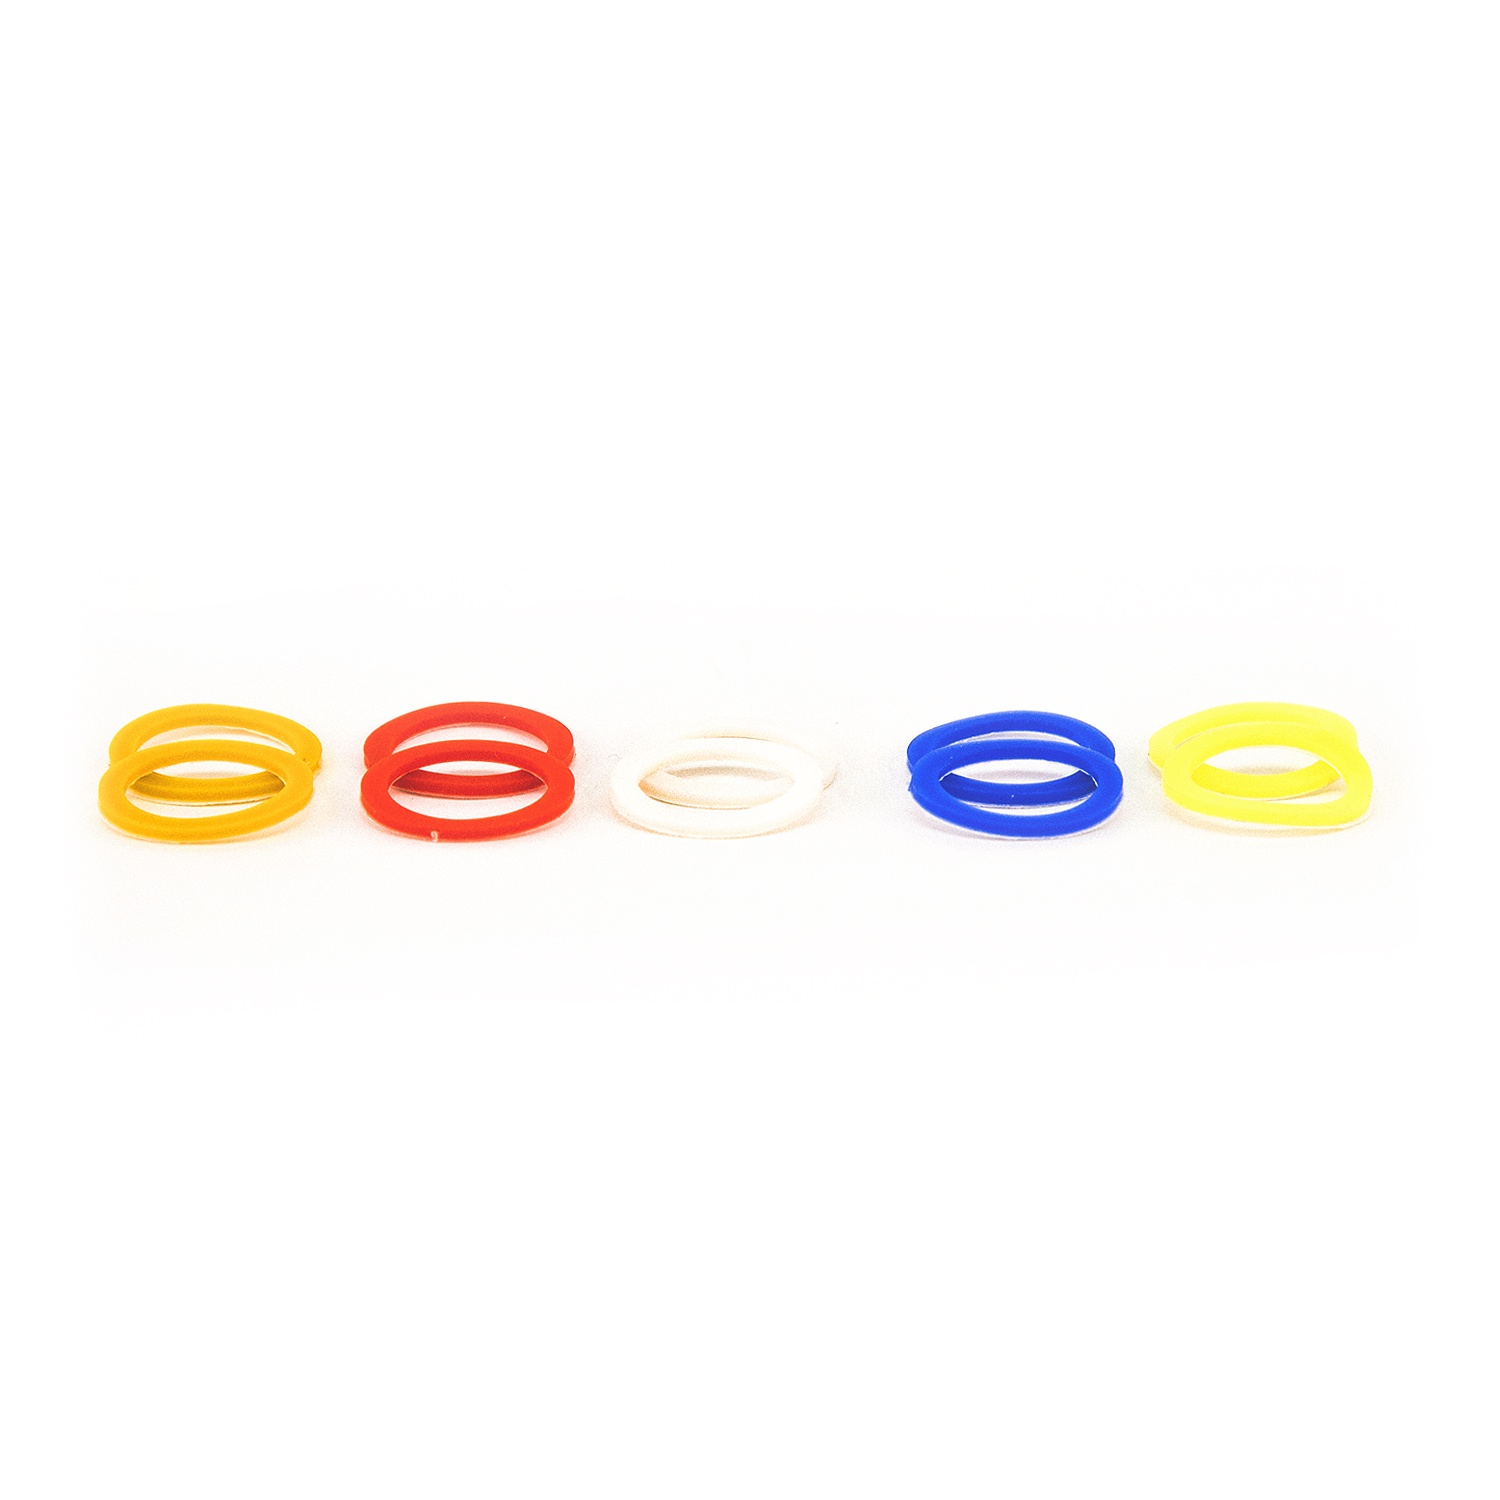 Yoyofactory Pro Pad - Natural, Red, White, Blue, Yellow